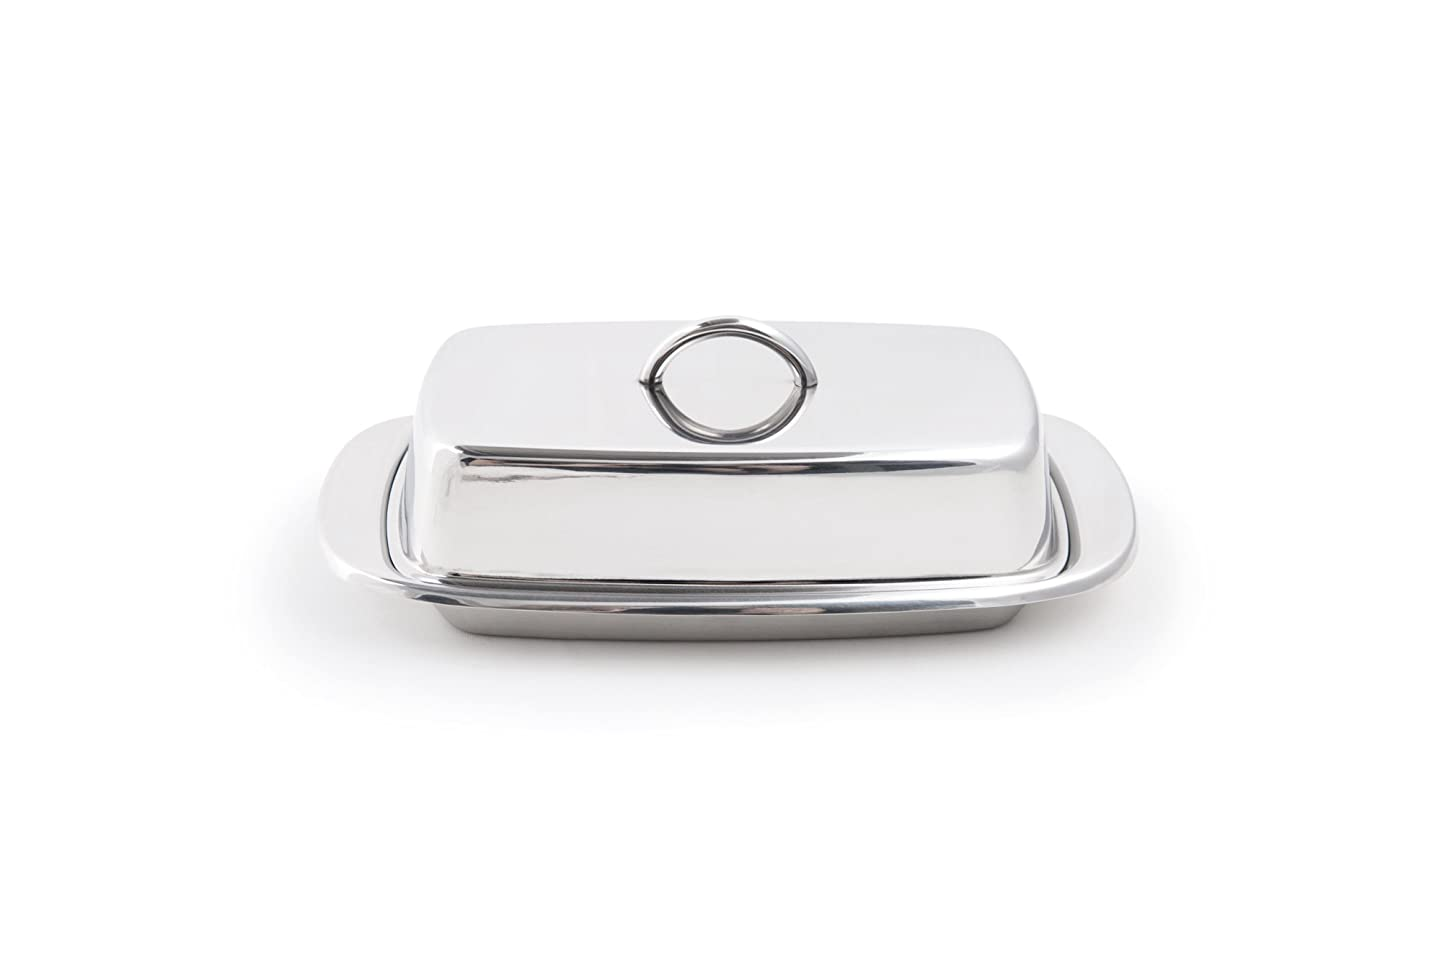 Fox Run 6510 Stainless Steel Butter Dish with Lid, Silver wcwetszzkwg1